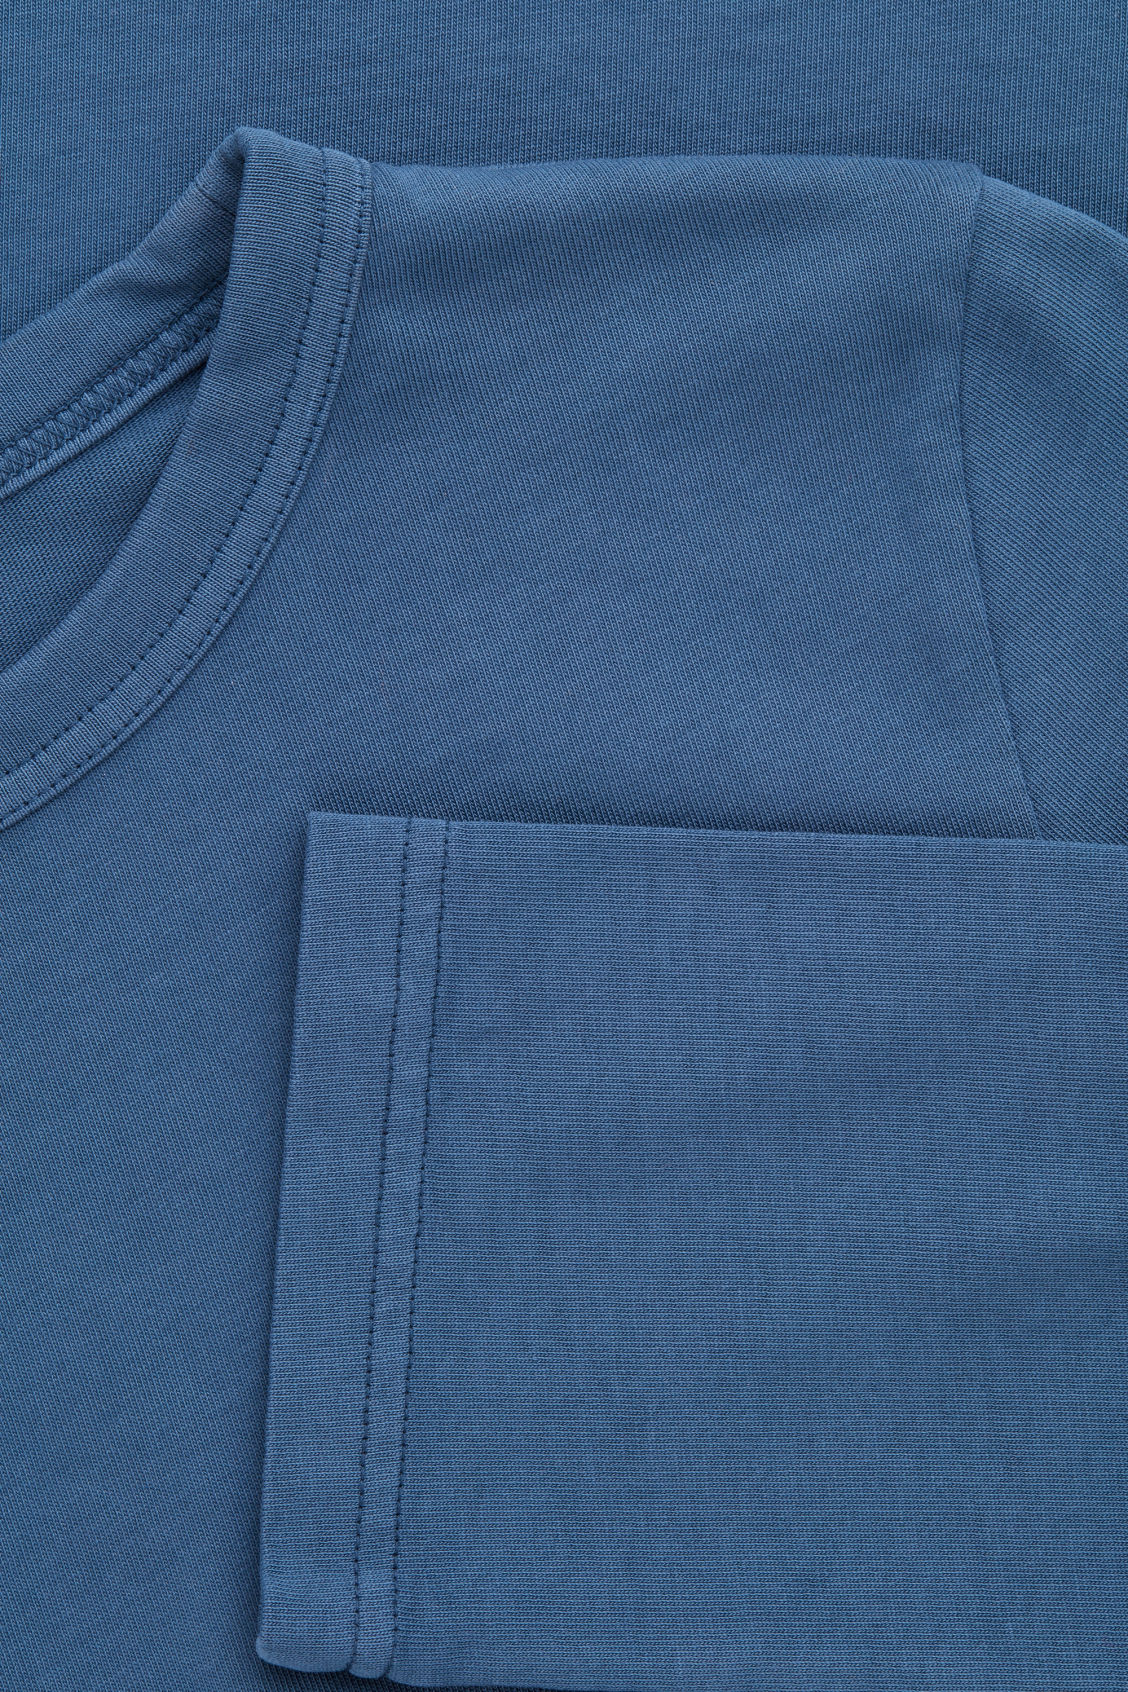 Side image of Cos loose long-sleeved t-shirt in blue